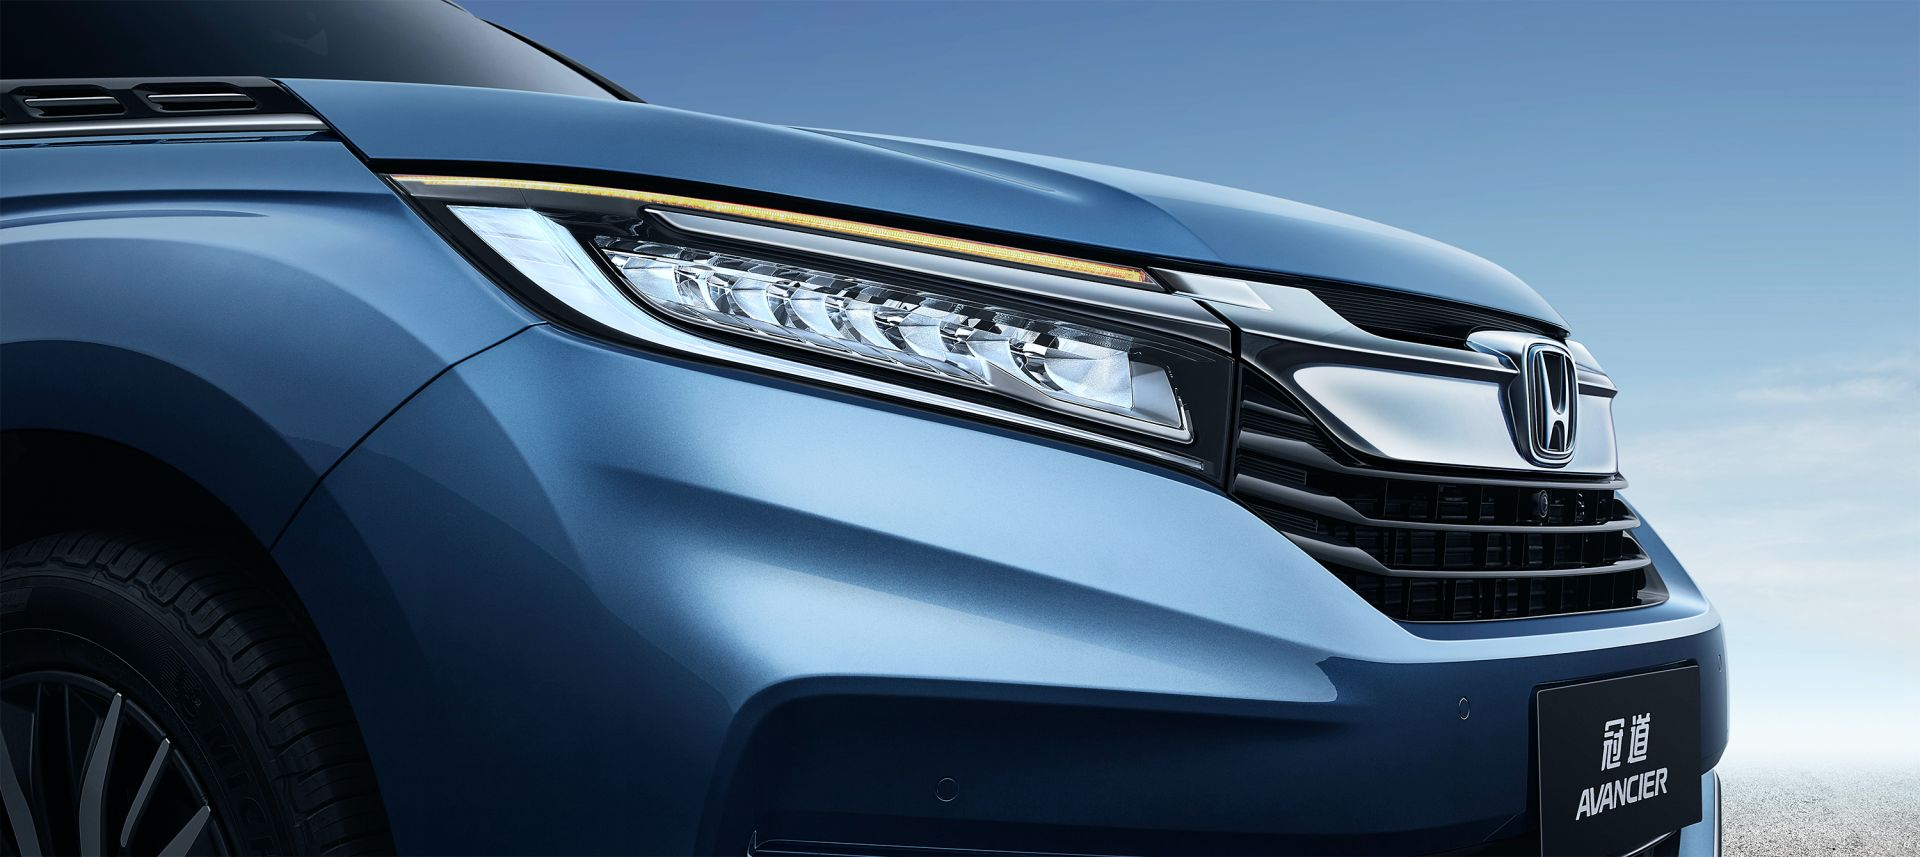 Honda-Avancier-facelift-2020-10